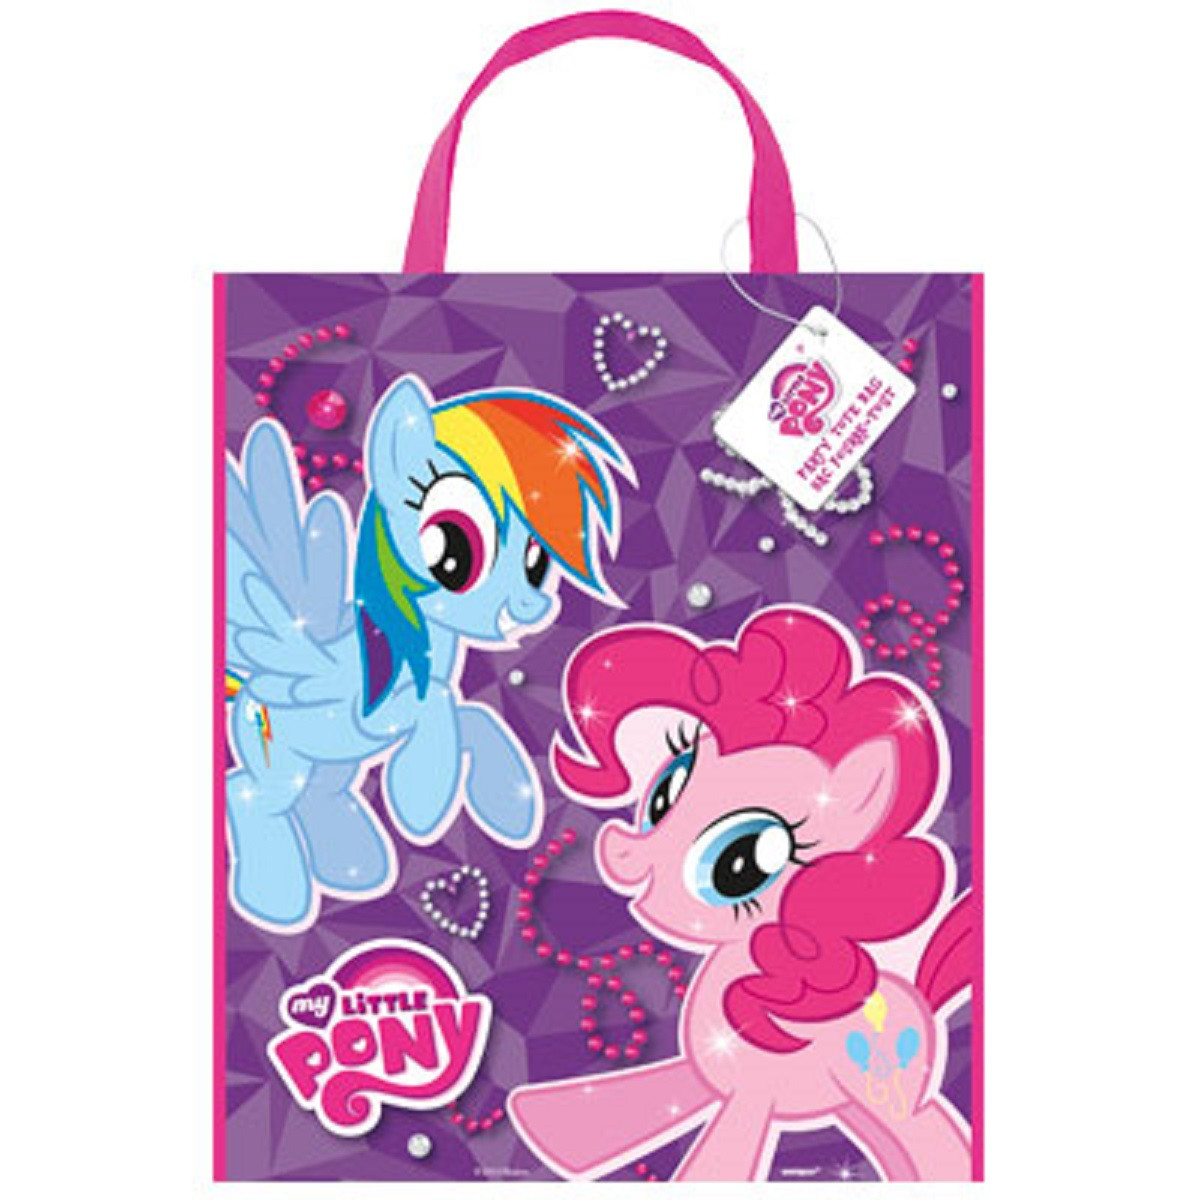 My Little Pony Large Party Tote Plastic Bag